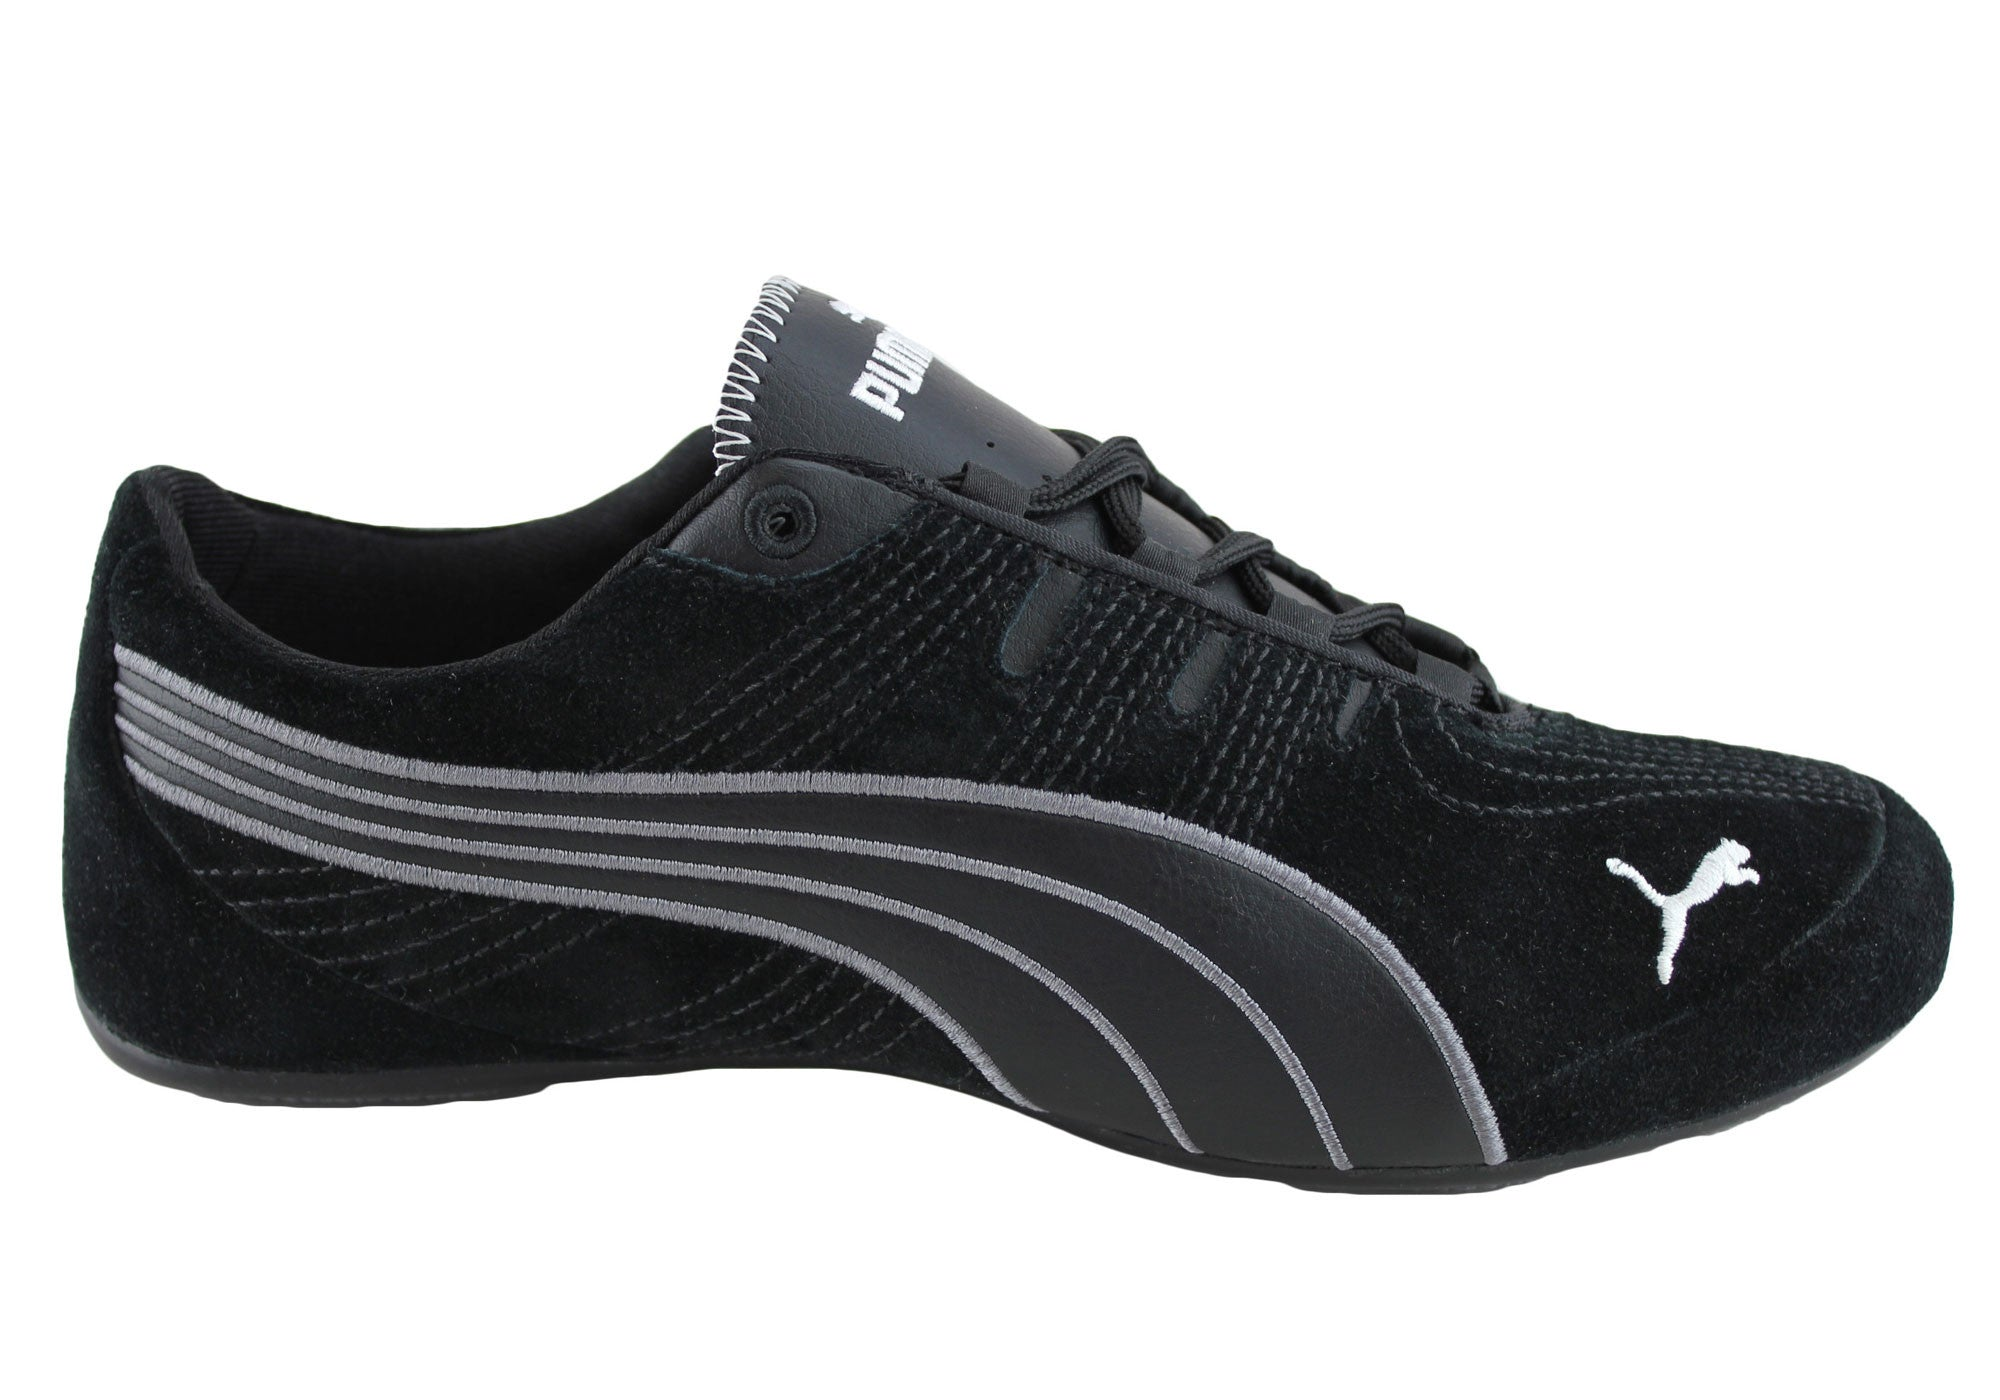 puma low profile sneakers - 52% remise